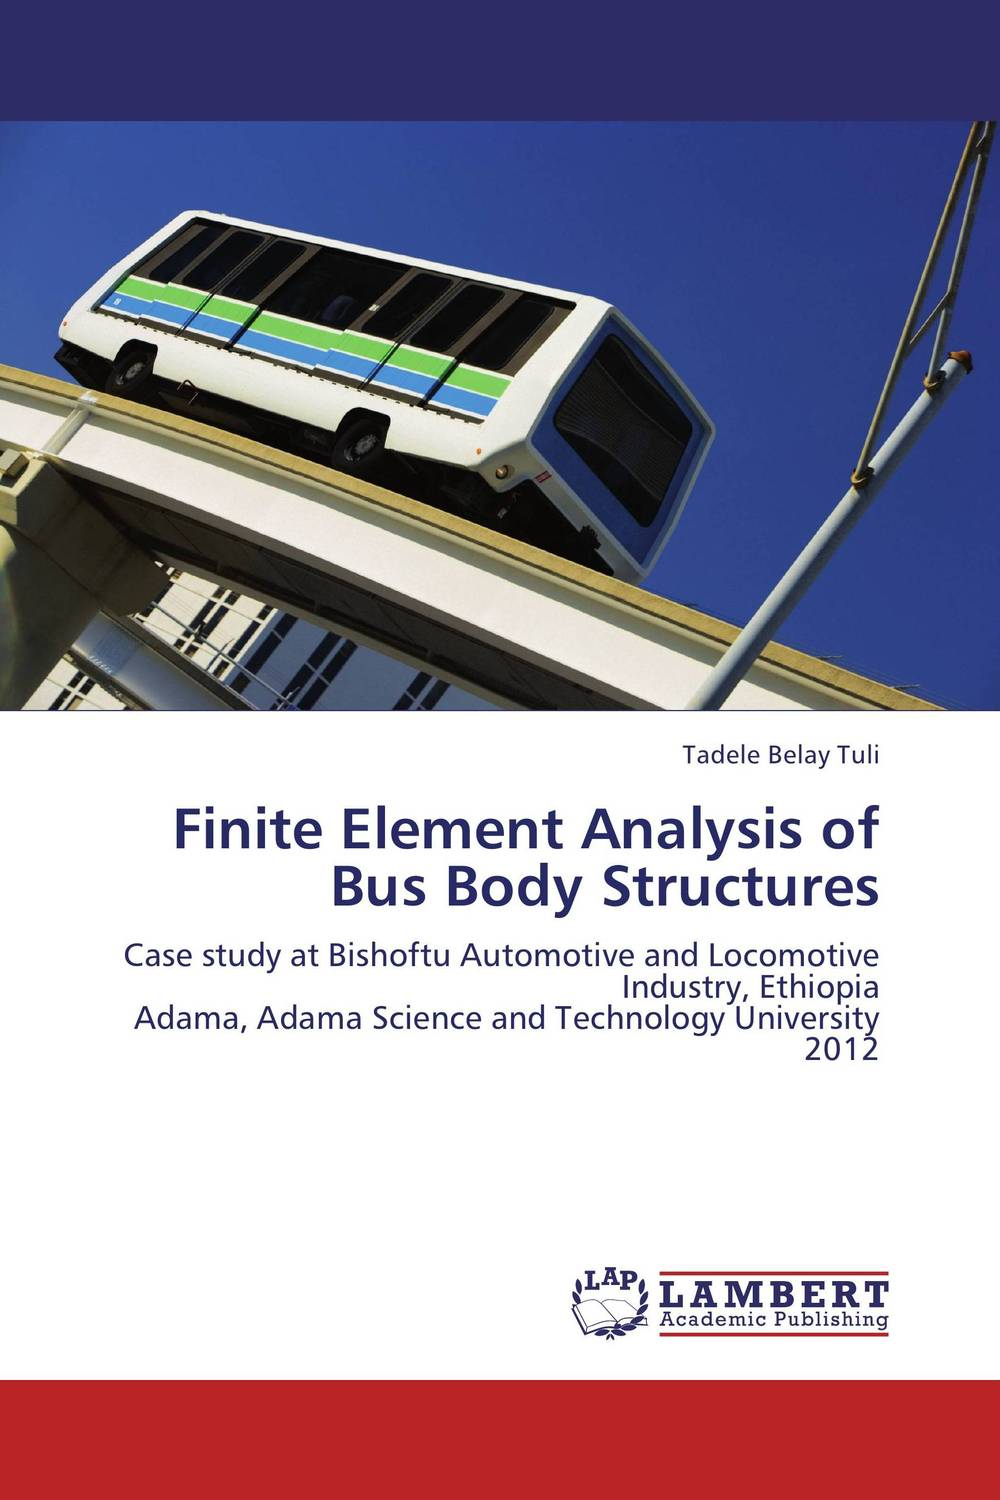 Finite Element Analysis of Bus Body Structures dynamic analysis and failure modes of simple structures